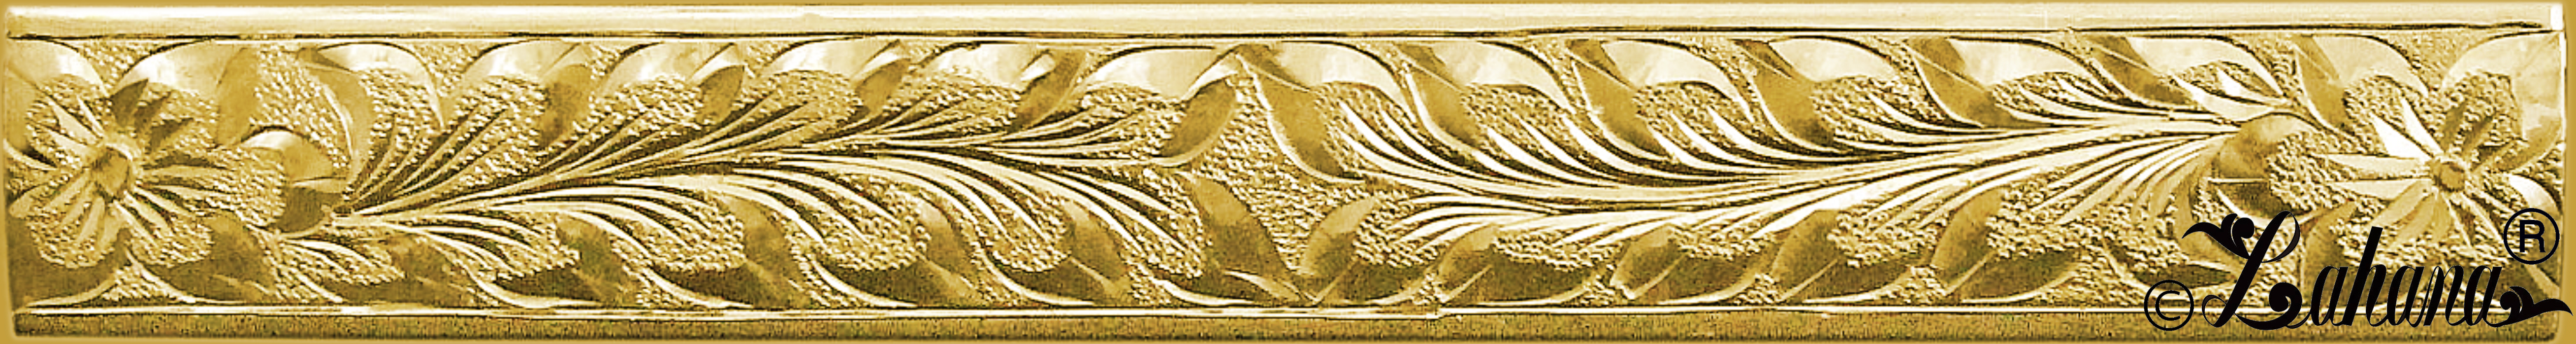 14k-sample-logo-ad-b.jpg